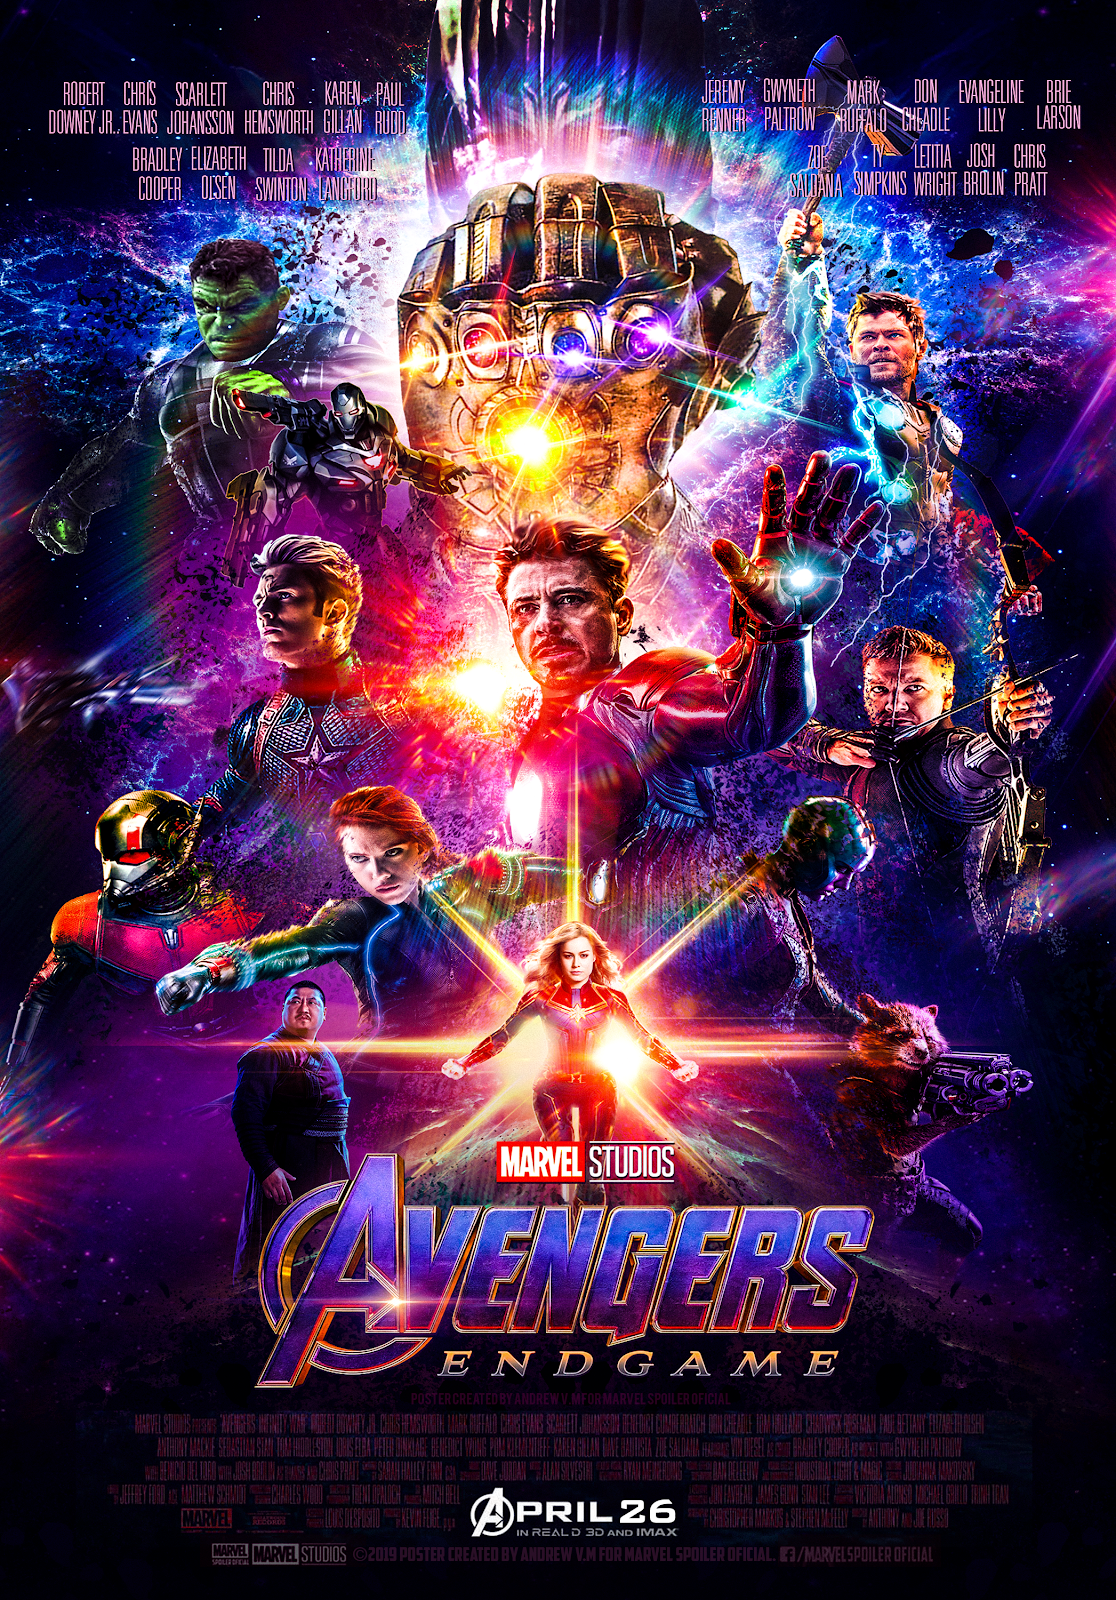 Endgame Official Poster Hd